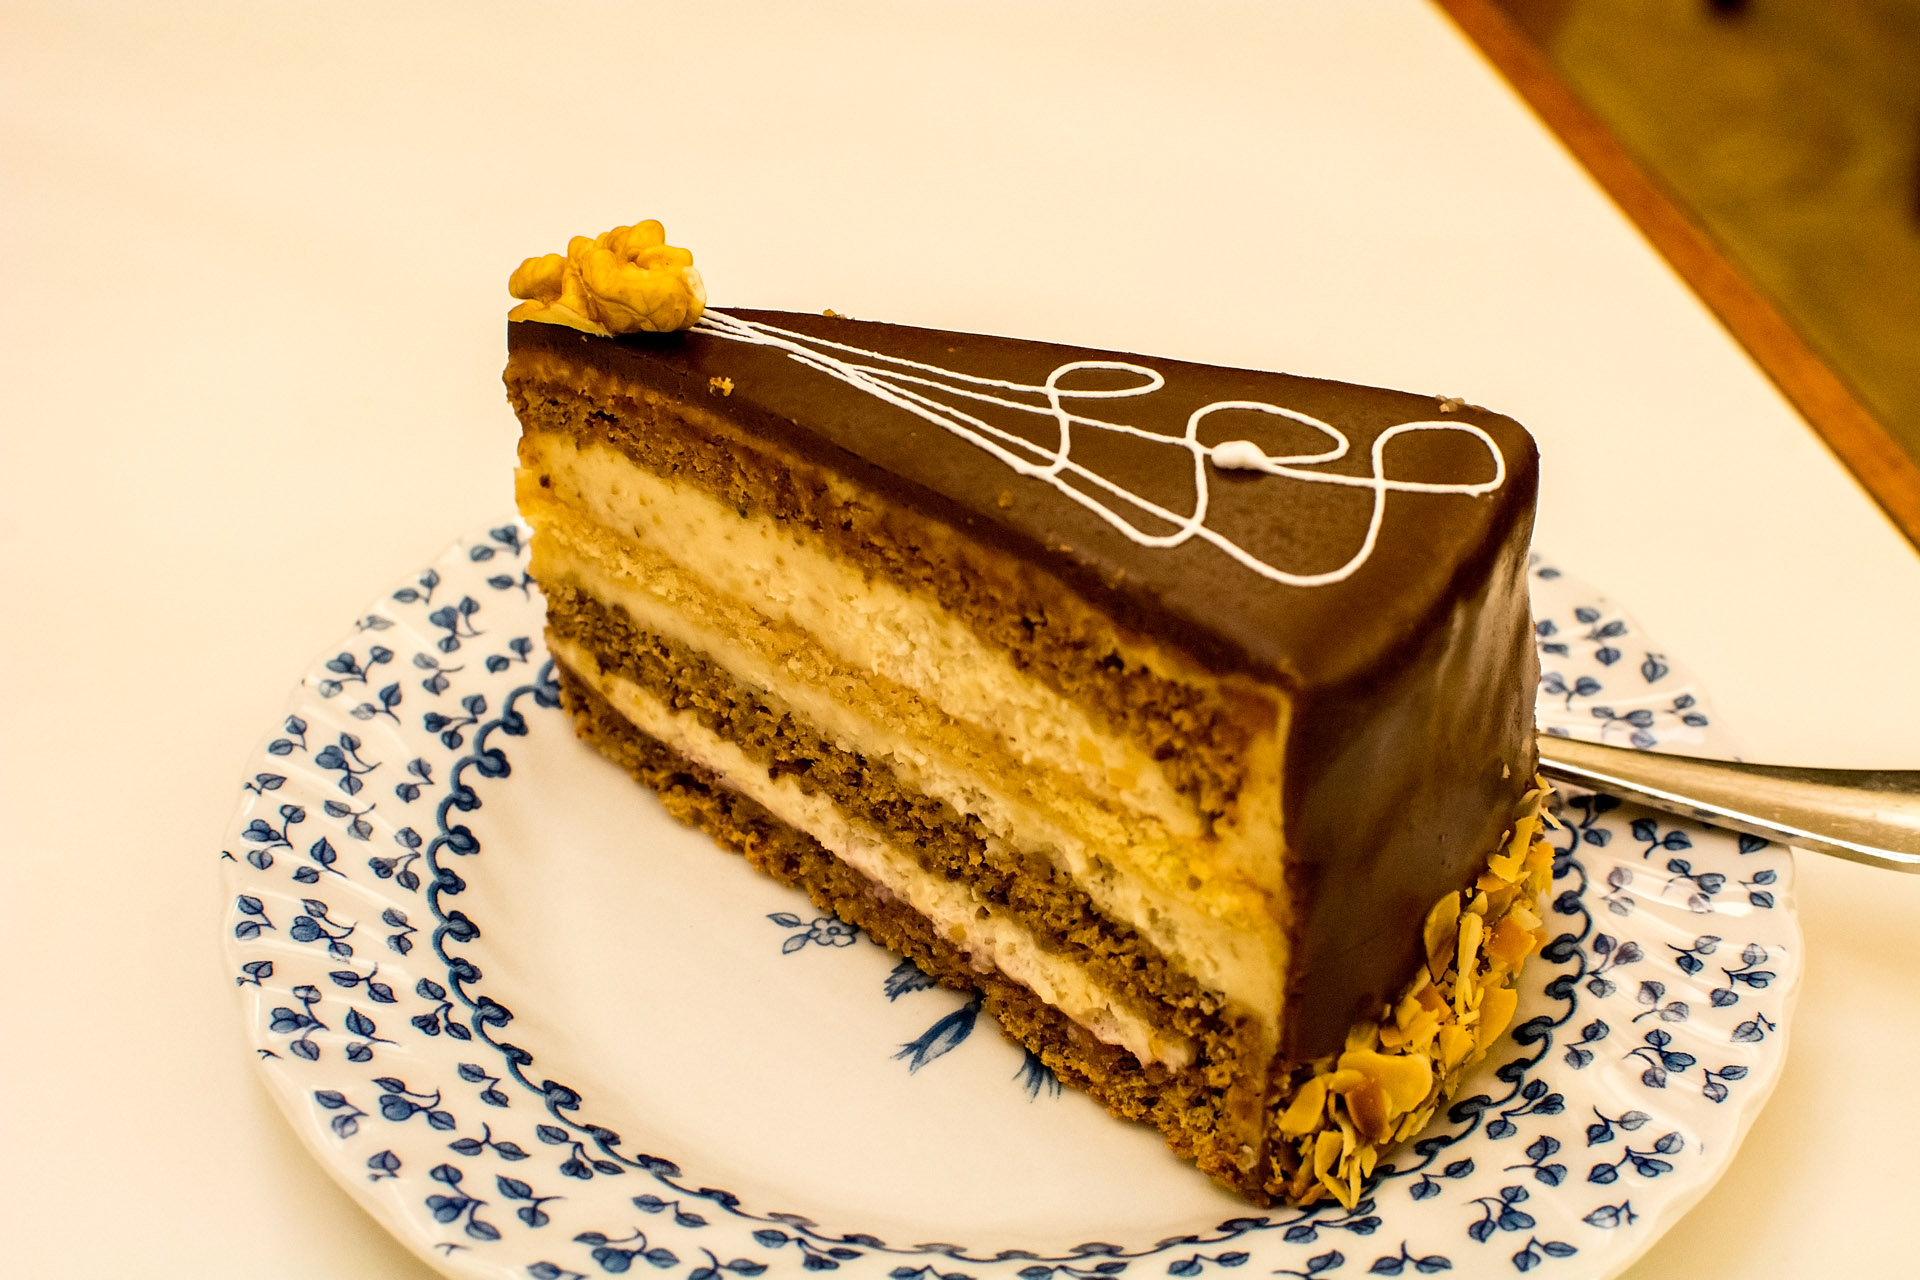 Walnusstorte (walnut torte)